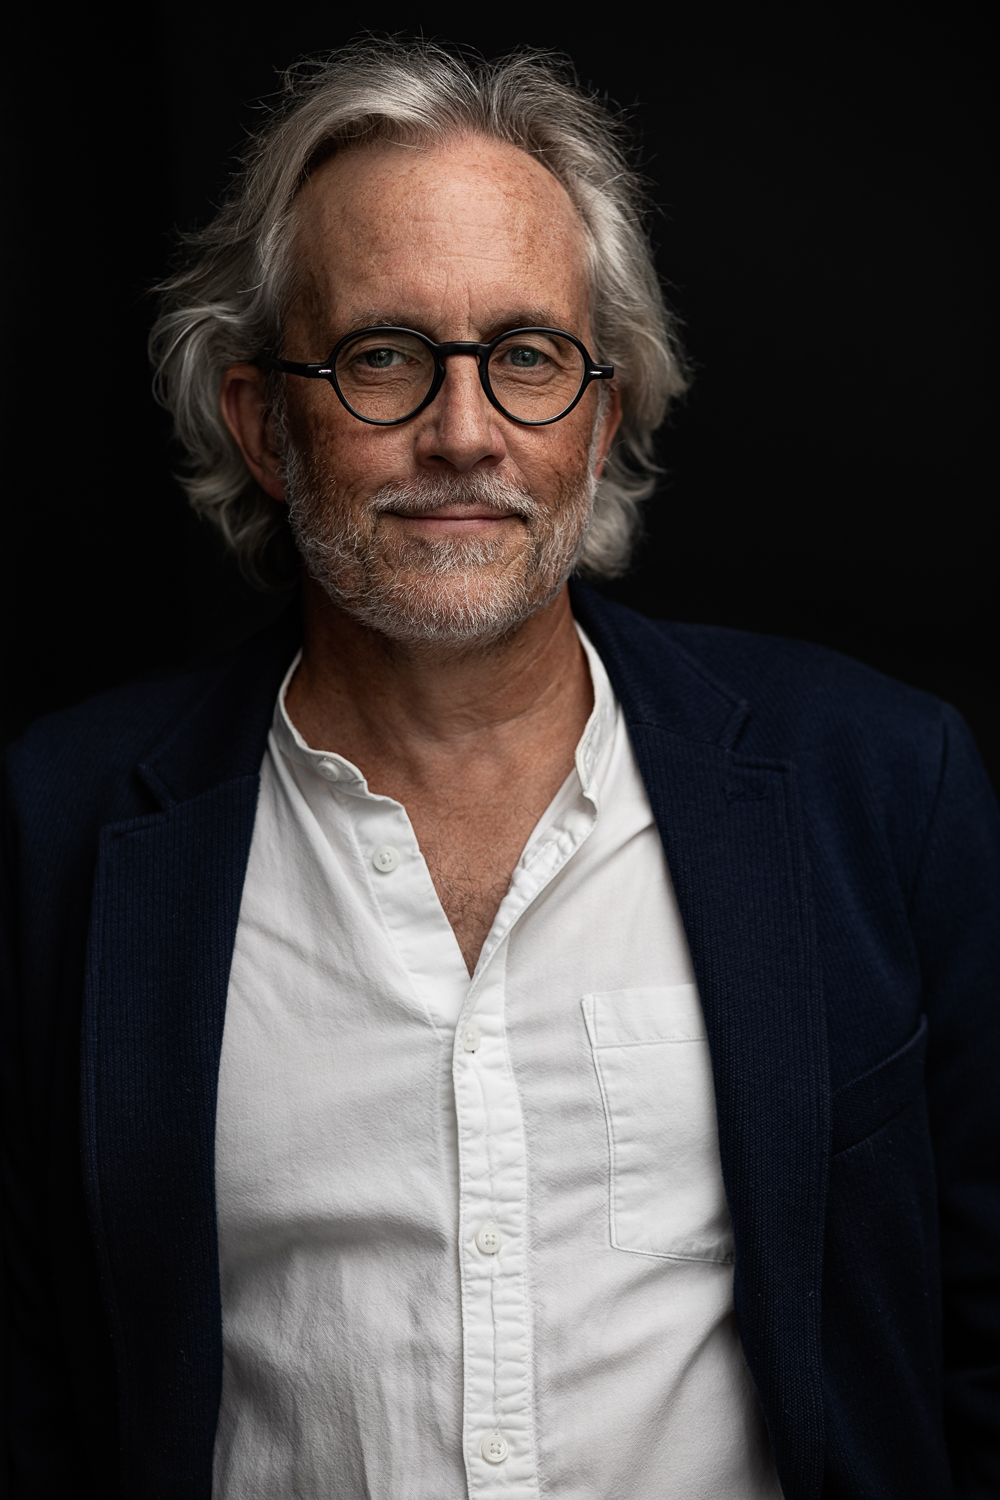 Headshot photo of a distinguished professor and author with silver hair and glasses